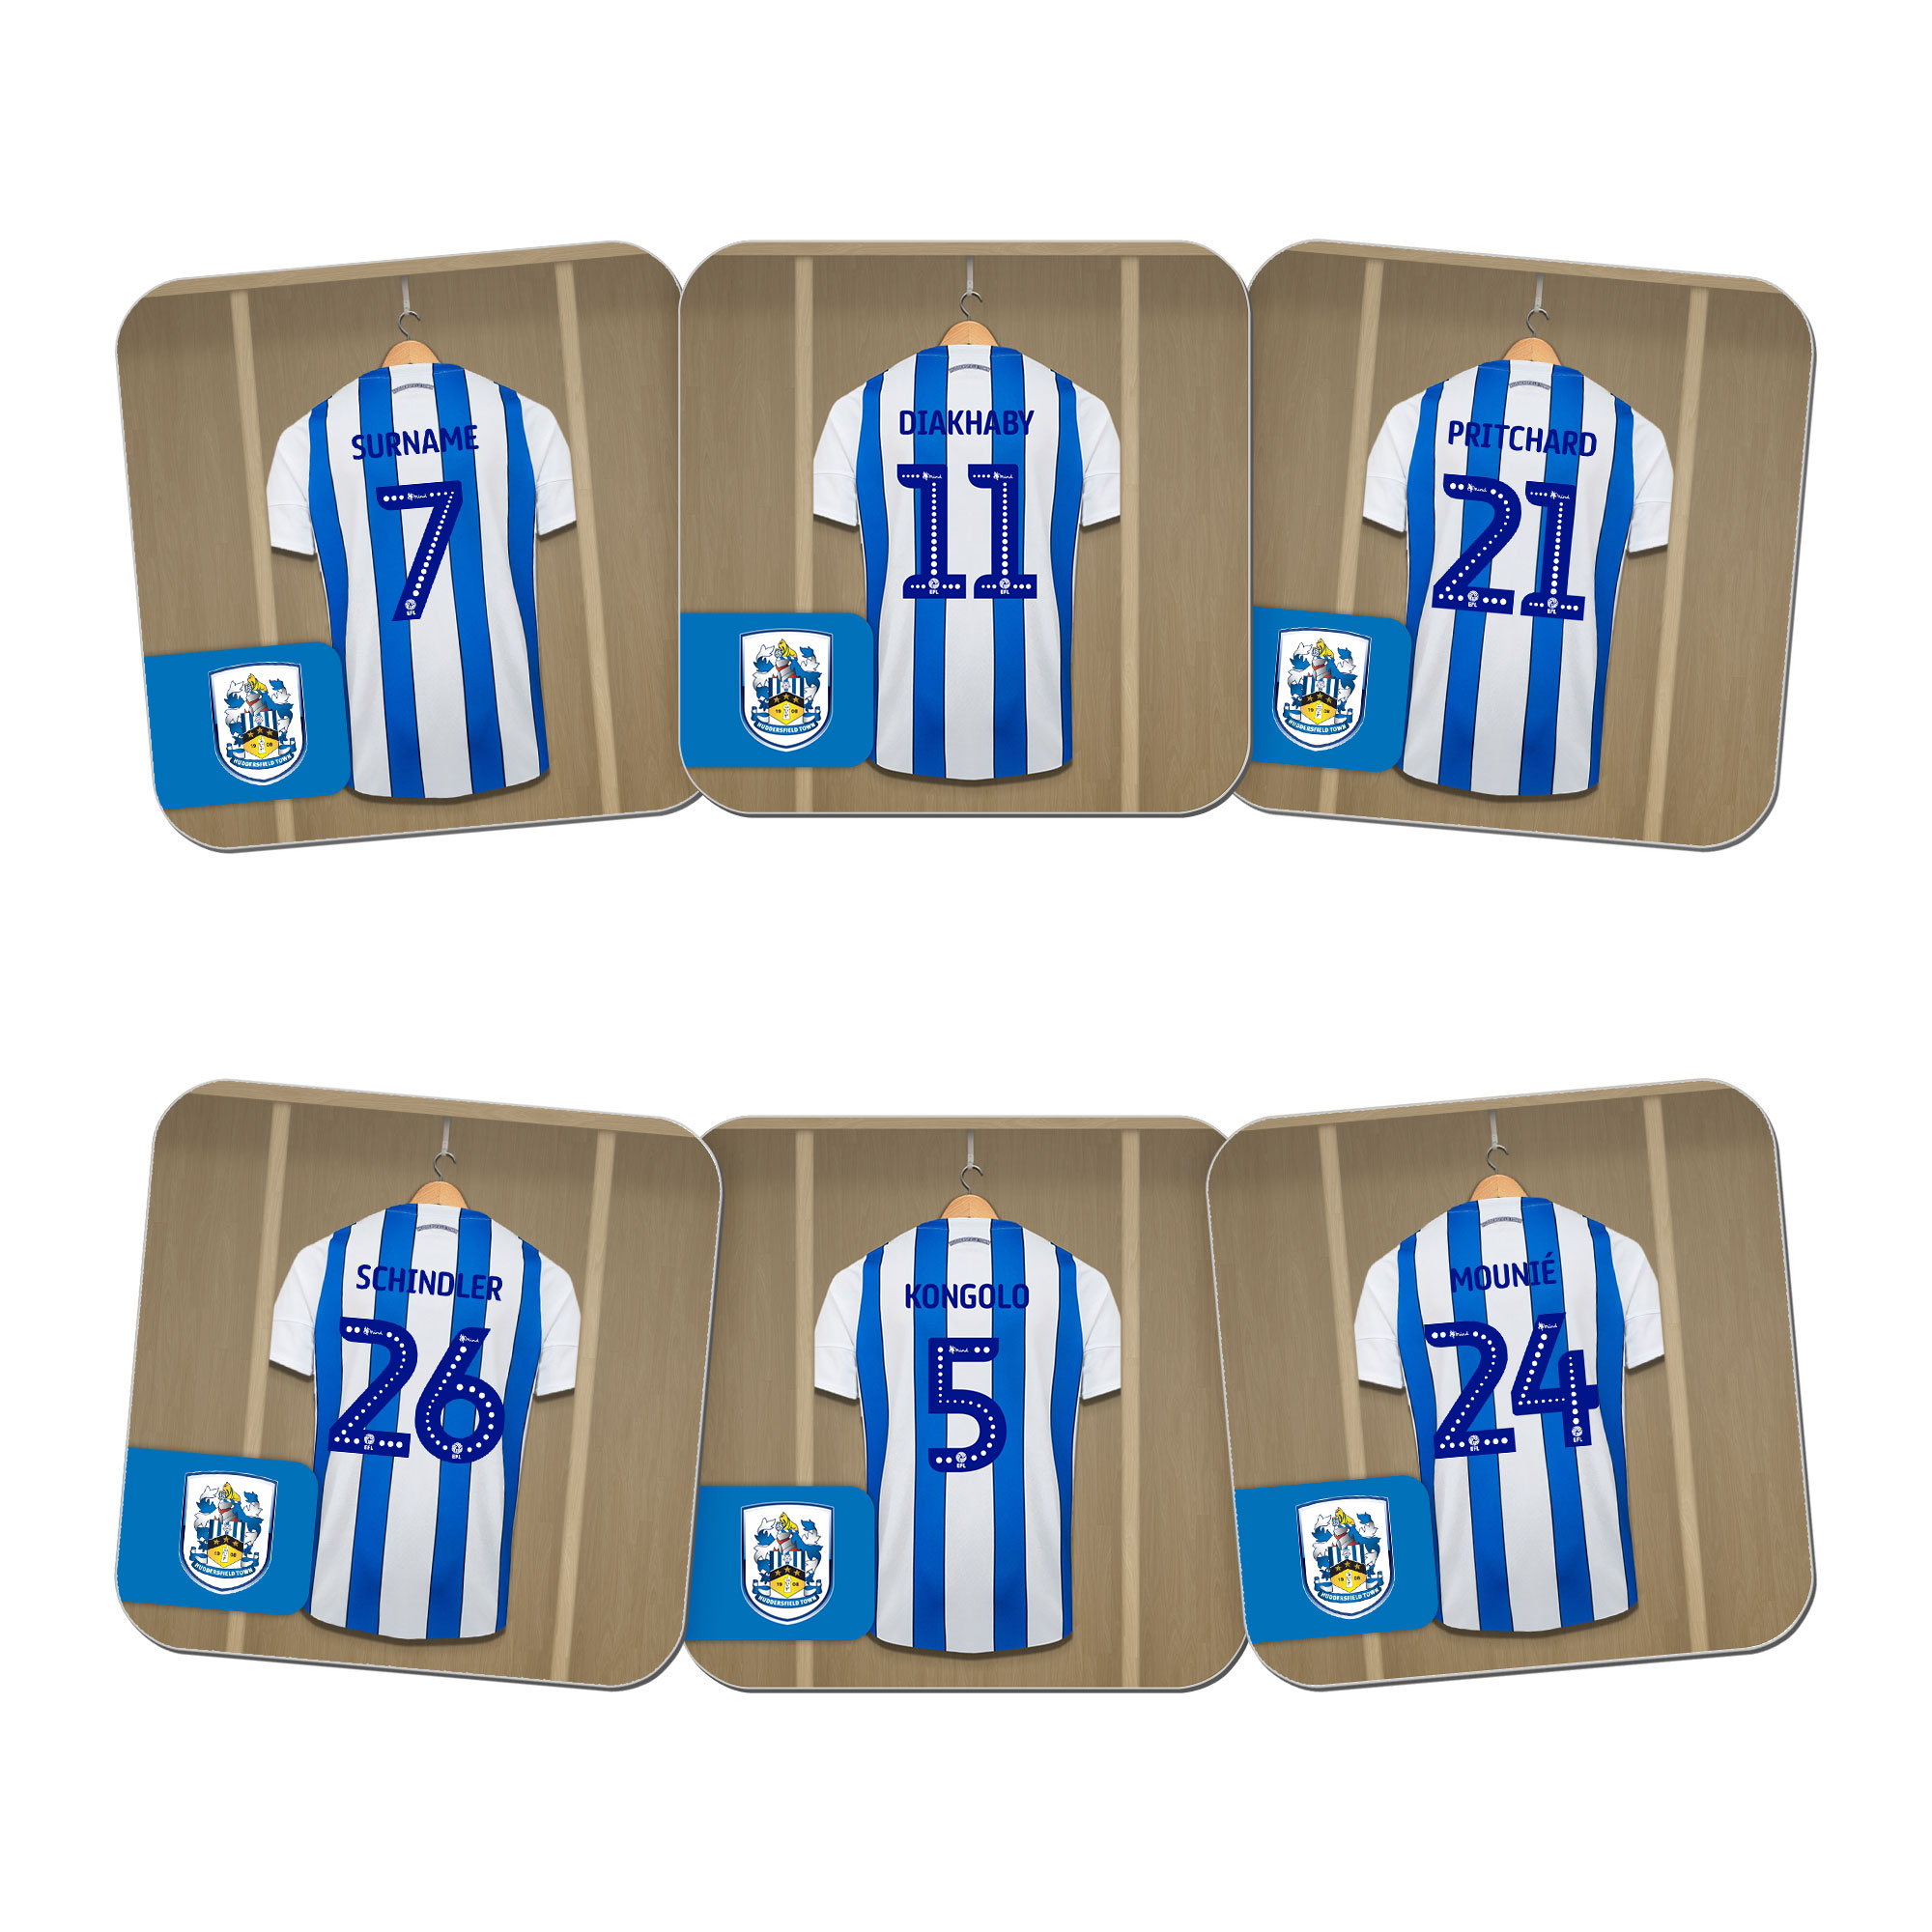 Huddersfield Town AFC Dressing Room Coasters